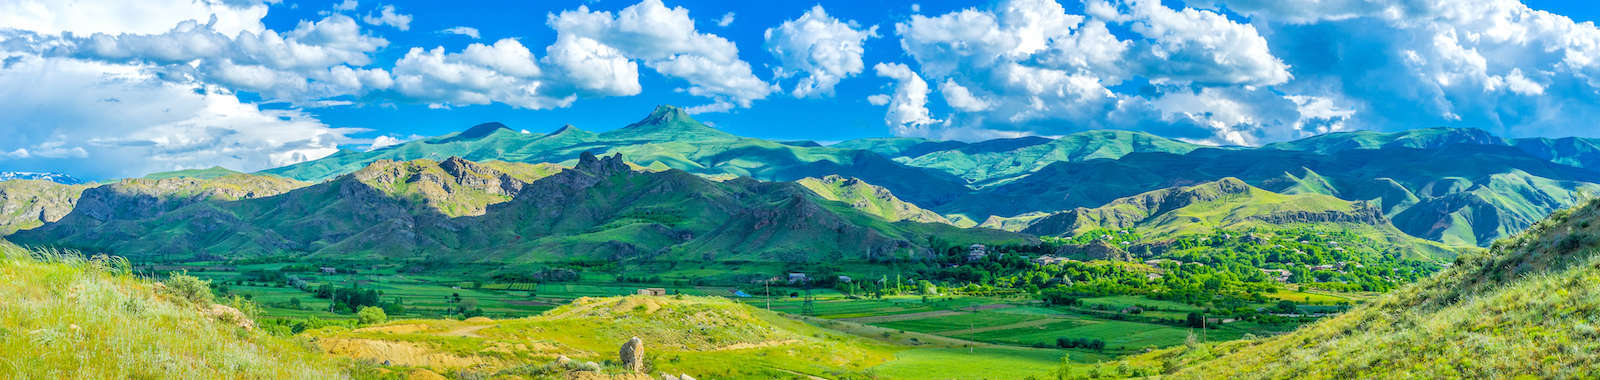 Explore Vayots Dzor Province in Southern Armenia on a tailor-made holiday